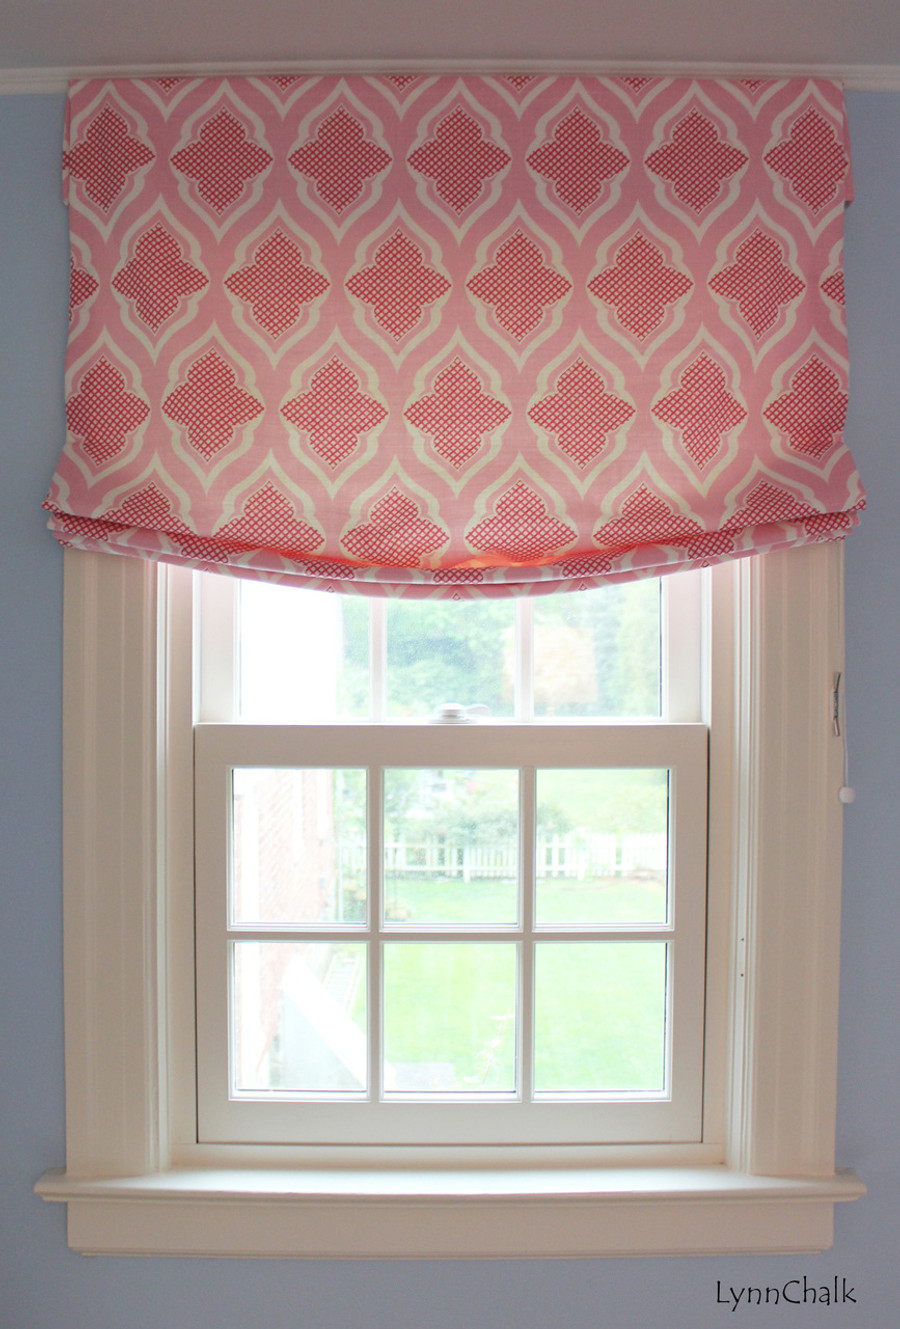 Christopher Farr Venecia Relaxed Roman Shade (Shown in Hot Pink-also comes in Aqua and Sage)